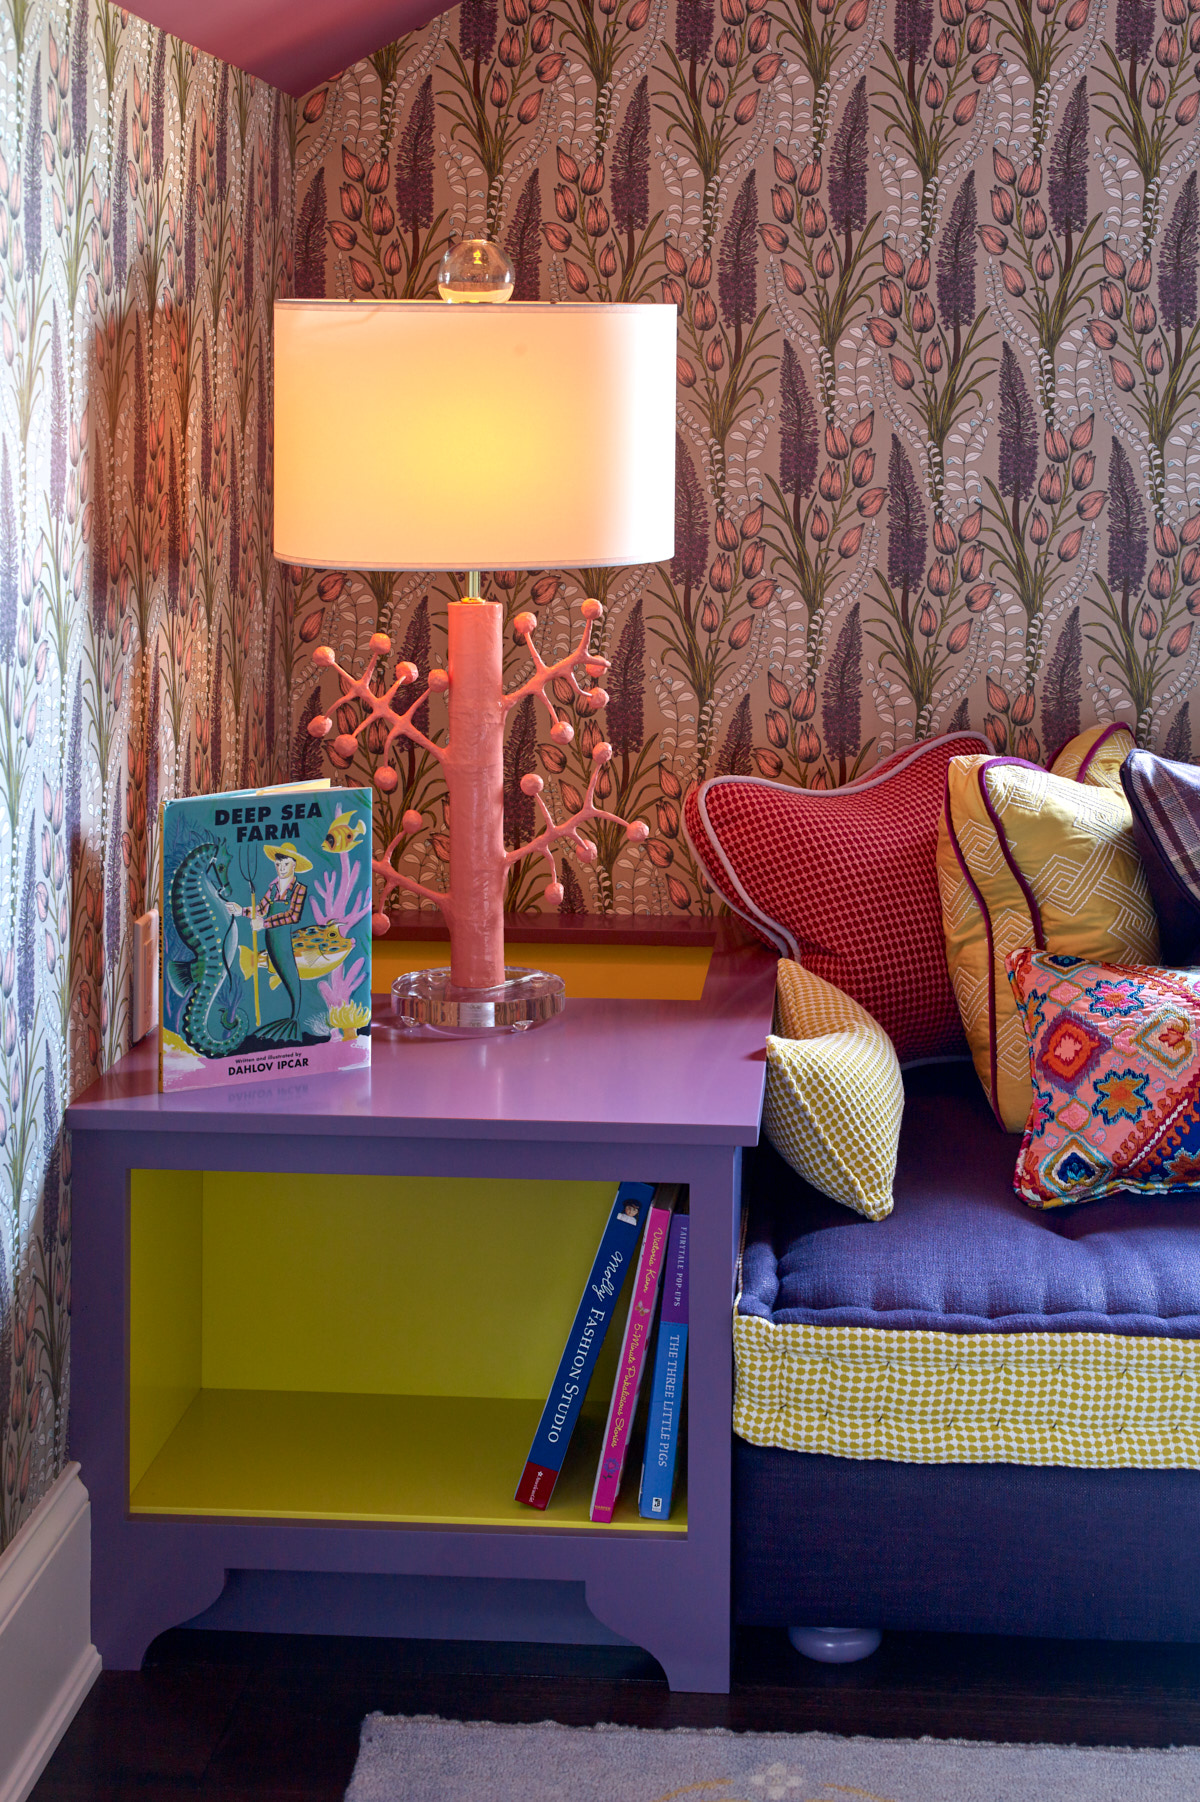 This reading nook sparks imagination with unique wallpaper and coral-inspired light fixture.